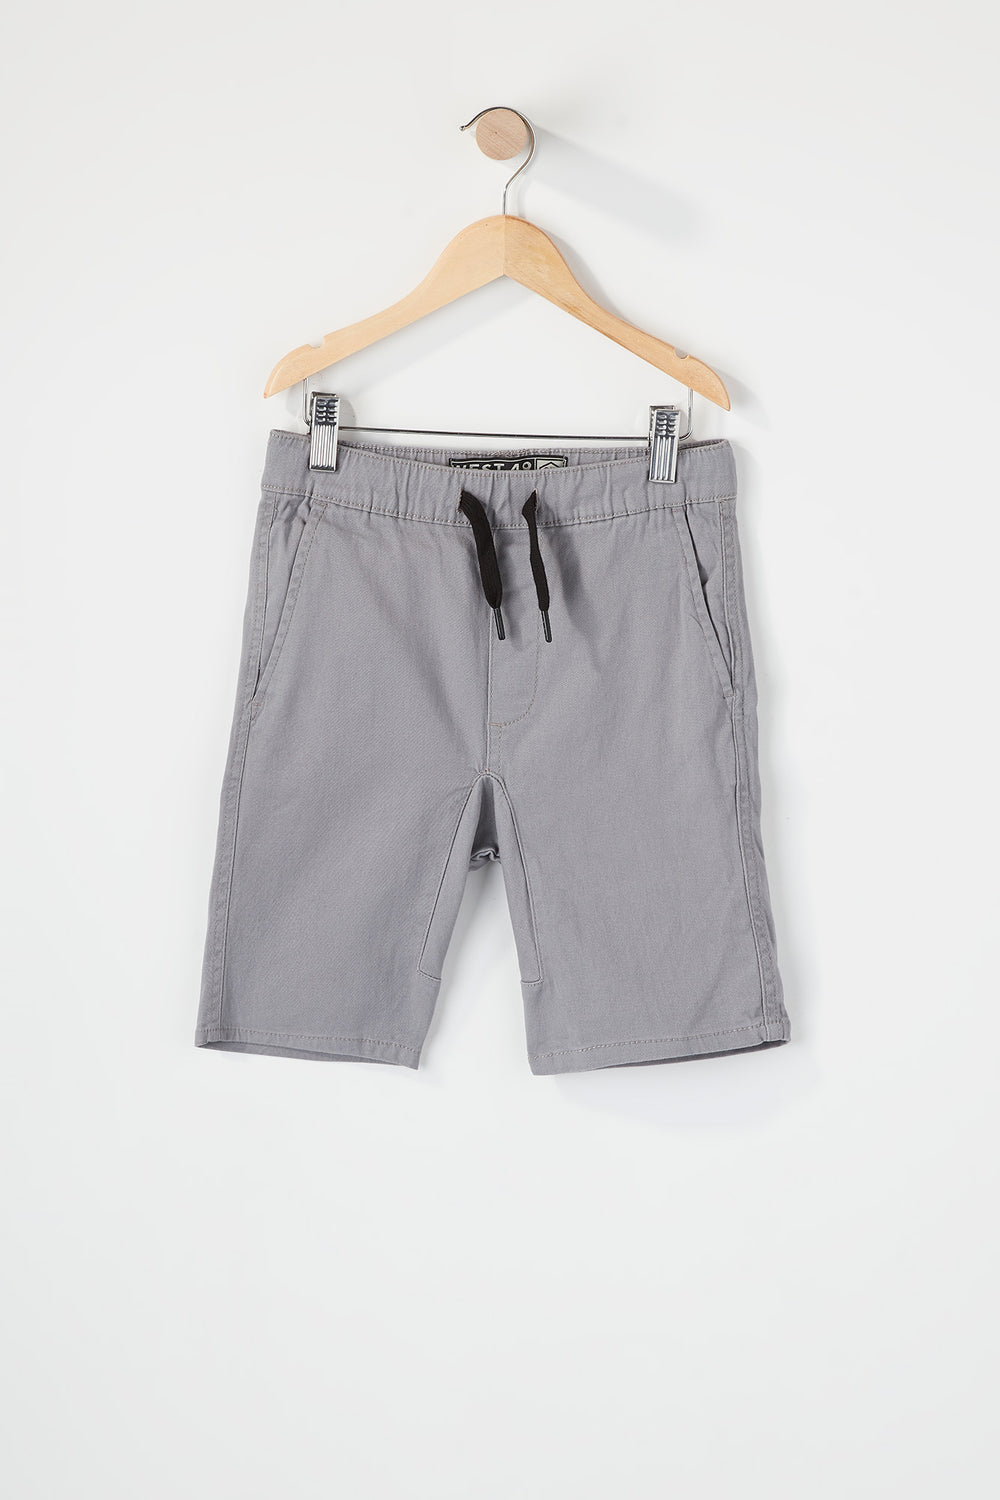 West49 Boys Jogger Short Heather Grey